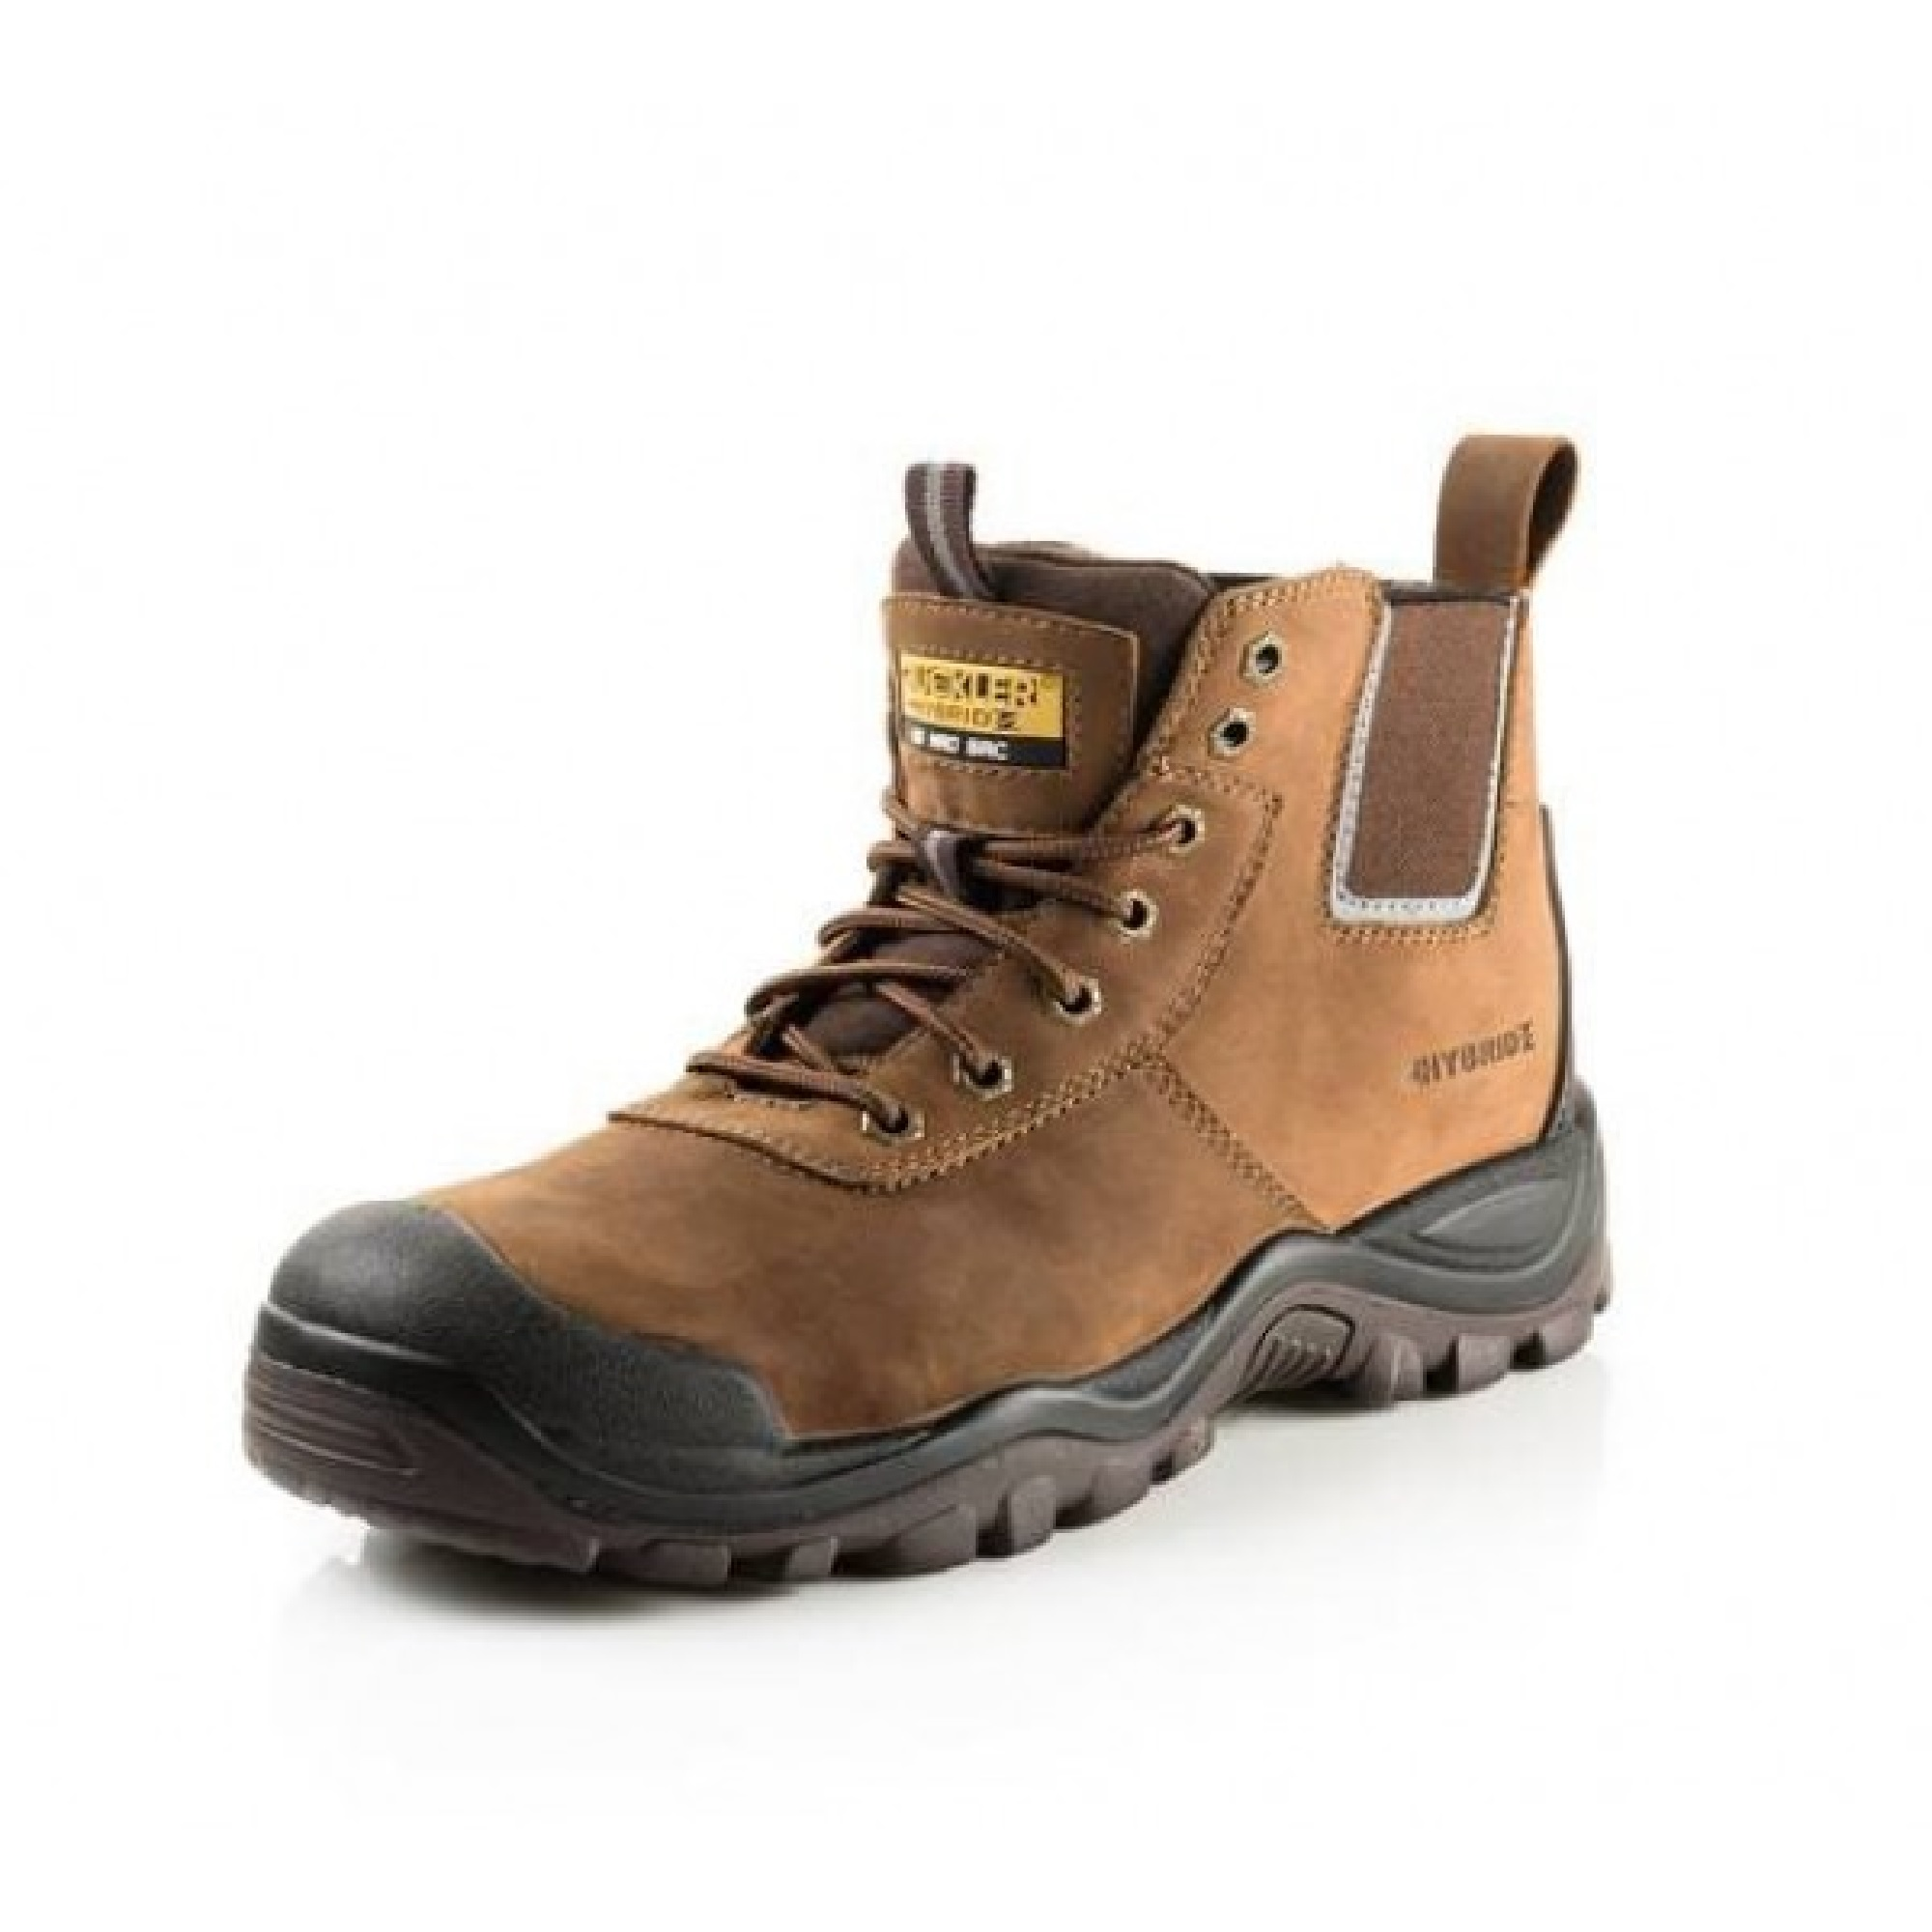 Brown nubuck leather Buckler BHYB2 lace safety boot with yellow 'Buckler Hybridz' logo on tongue and Hybridz branding on side